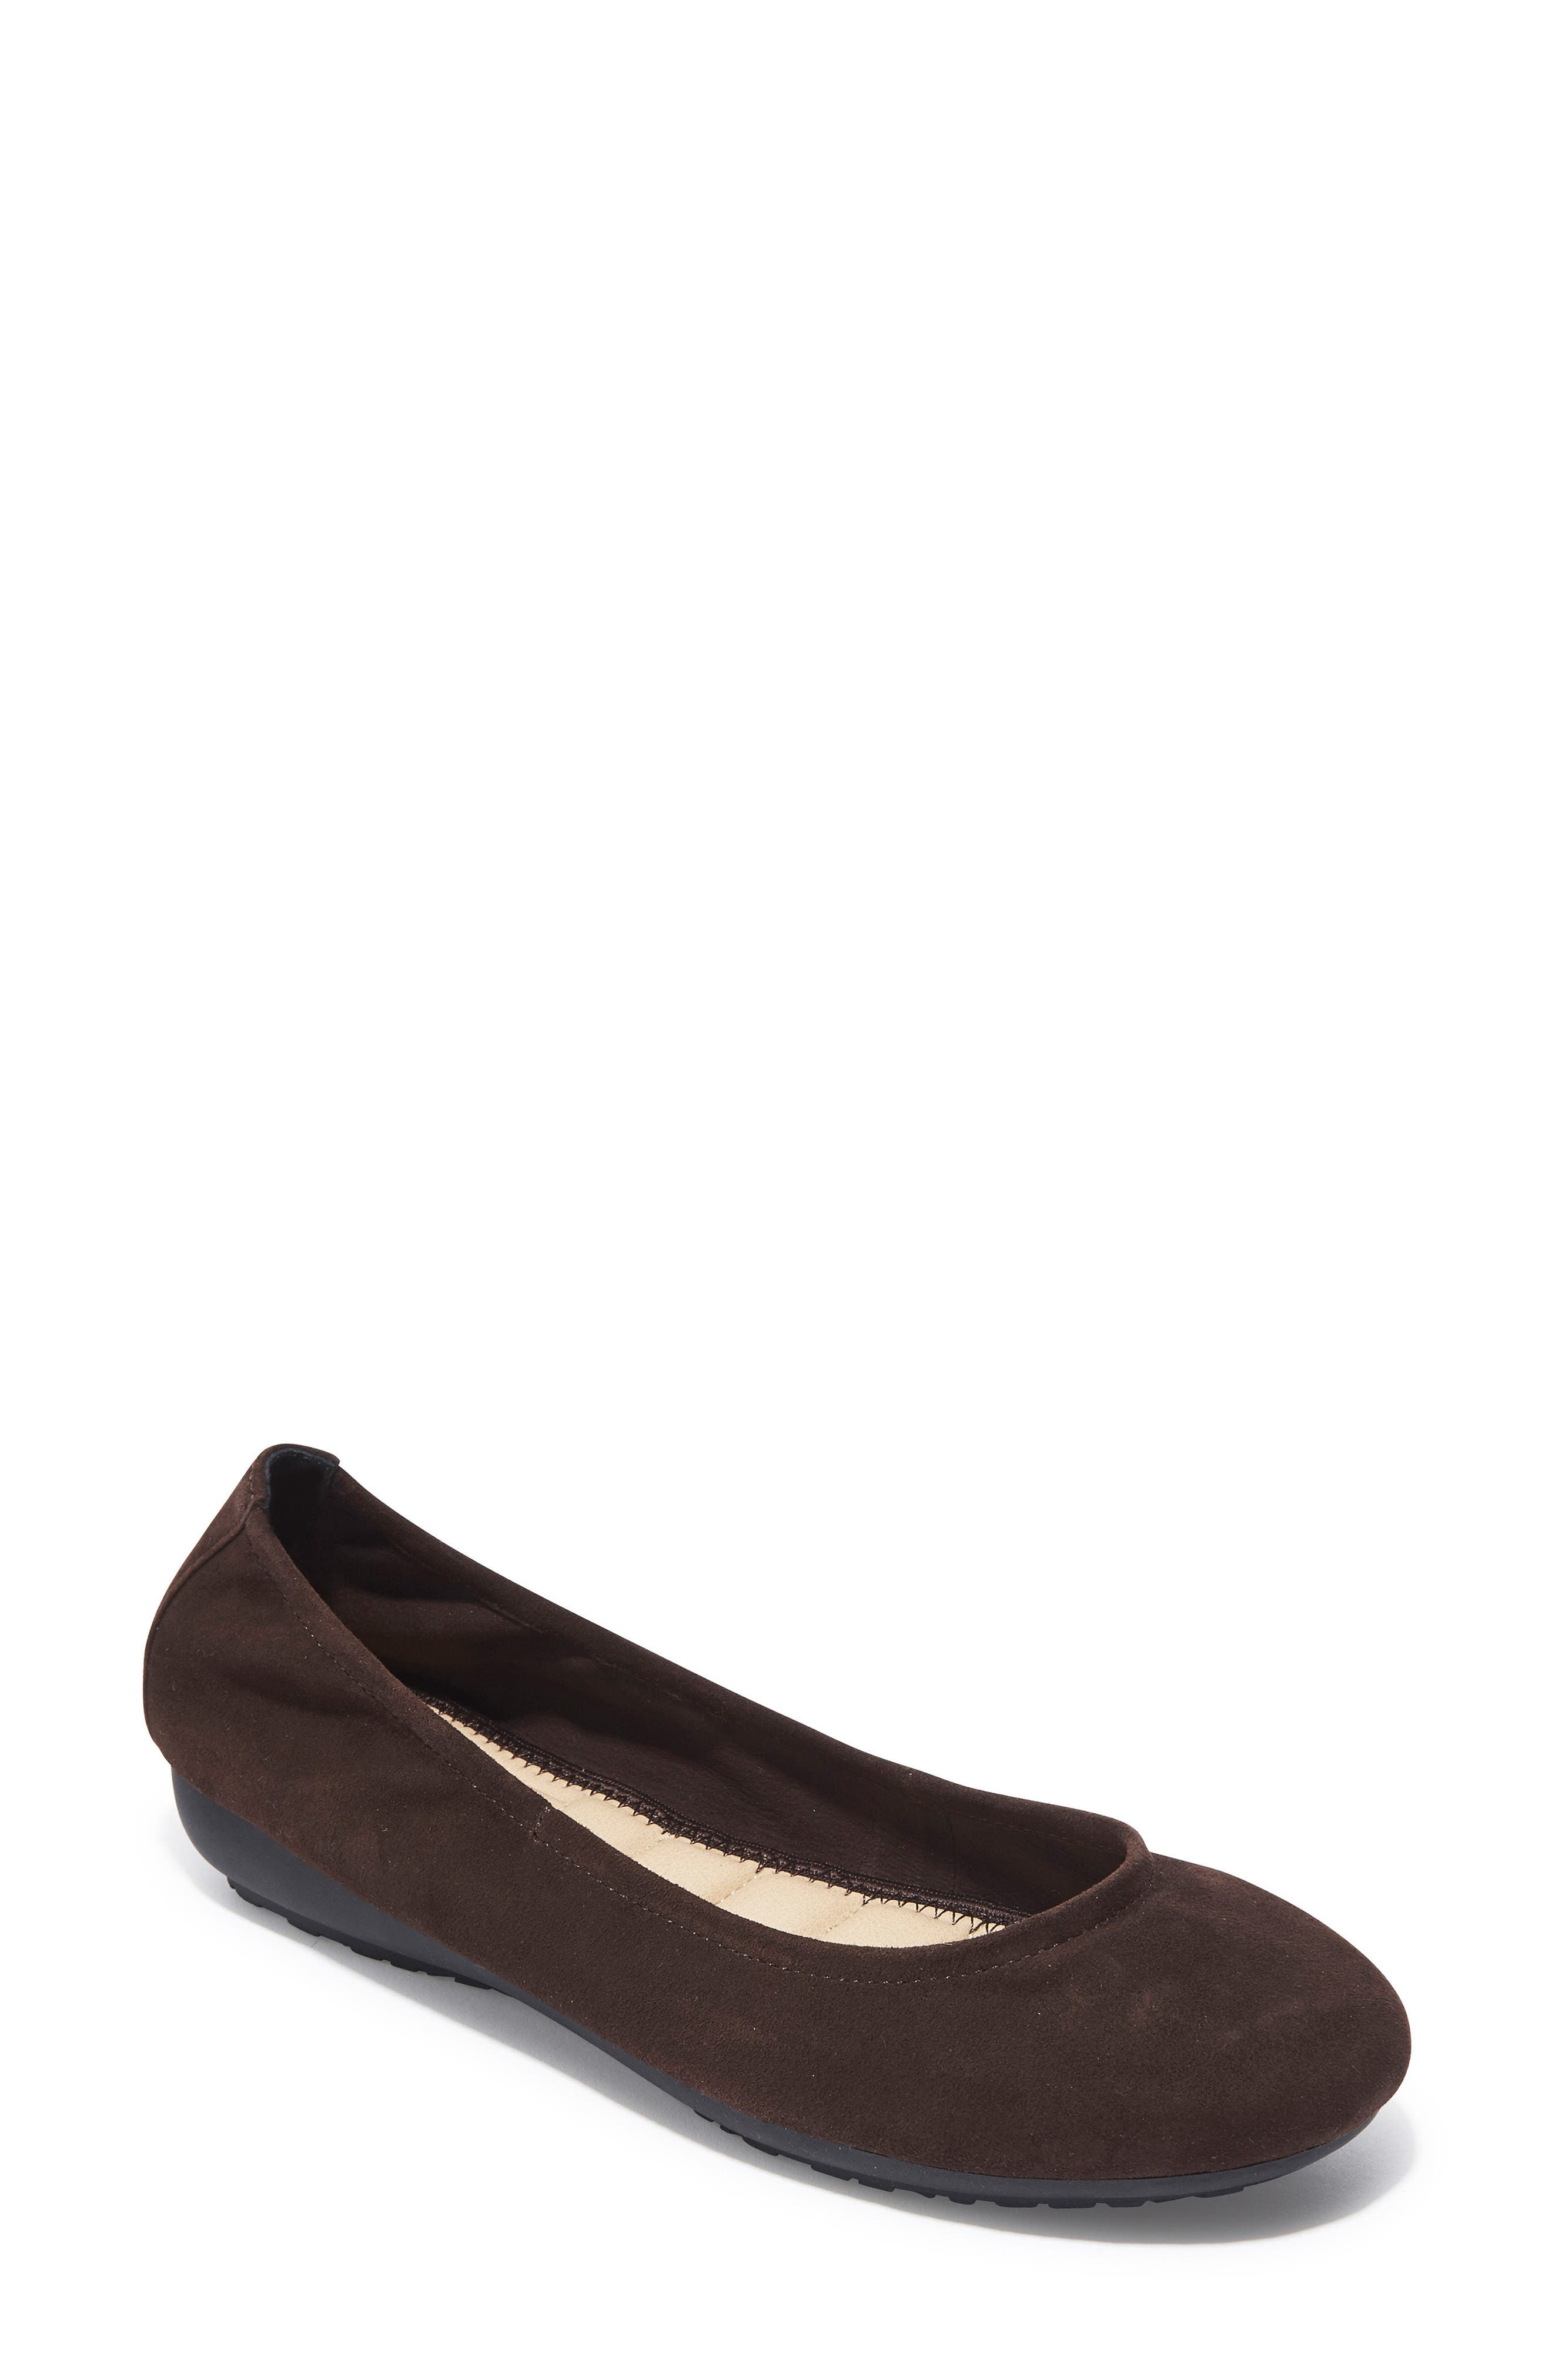 Alternate Image 1 Selected - Me Too Janell Sliver Wedge Flat (Women)